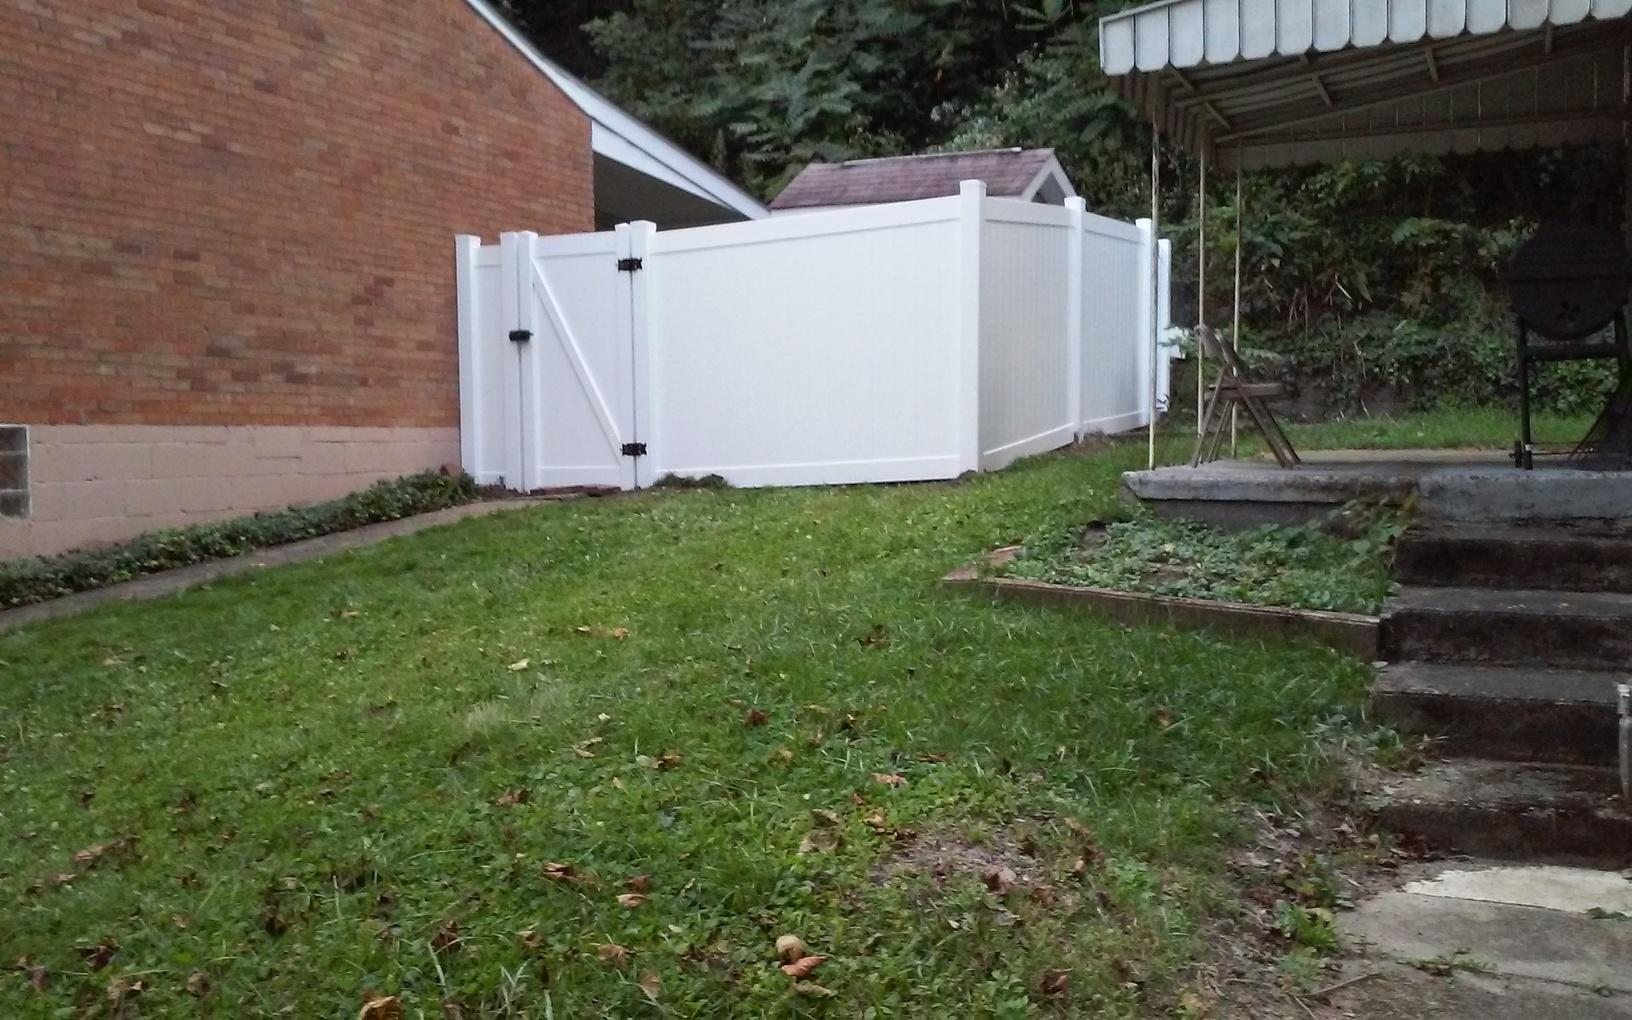 6'  Privacy Vinyl Fence Replacement in Pittsburgh, PA - After Photo